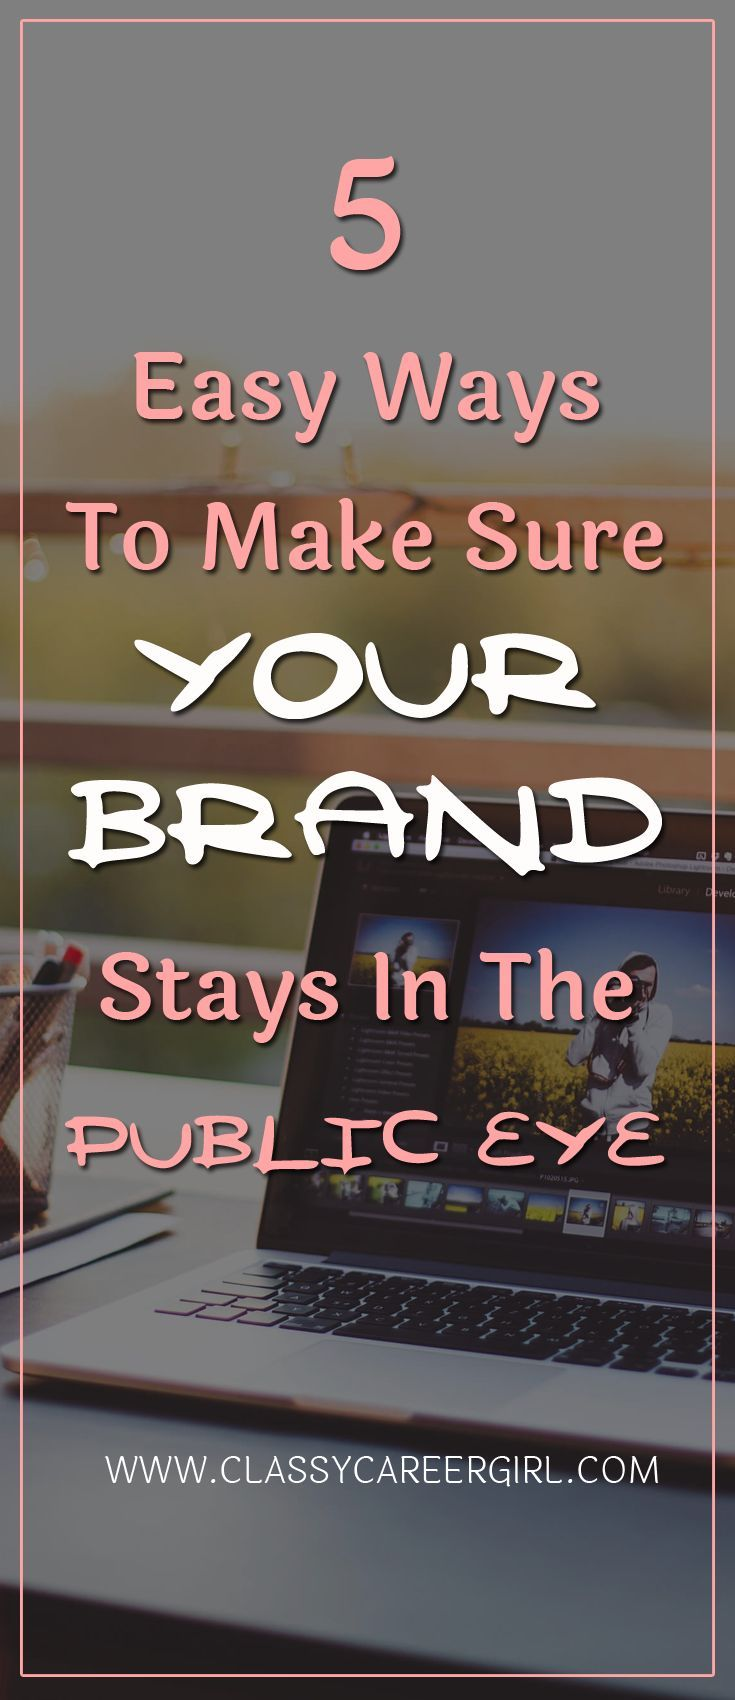 optimal resume login%0A   Easy Ways To Make Sure Your Brand Stays In The Public Eye